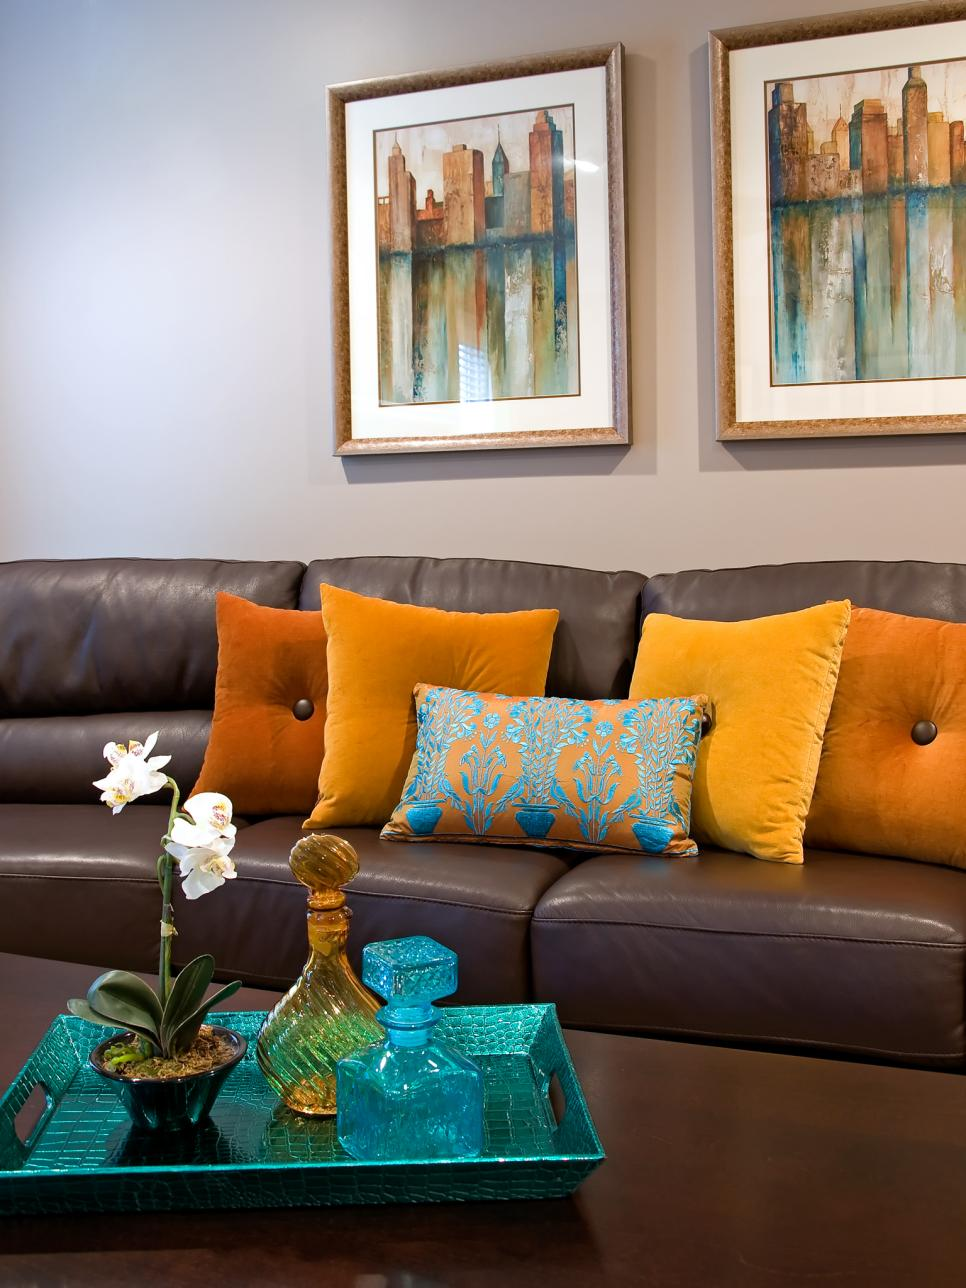 Small Living Rooms Decorating Hgtv: An Elegant, Balanced Living Room Design